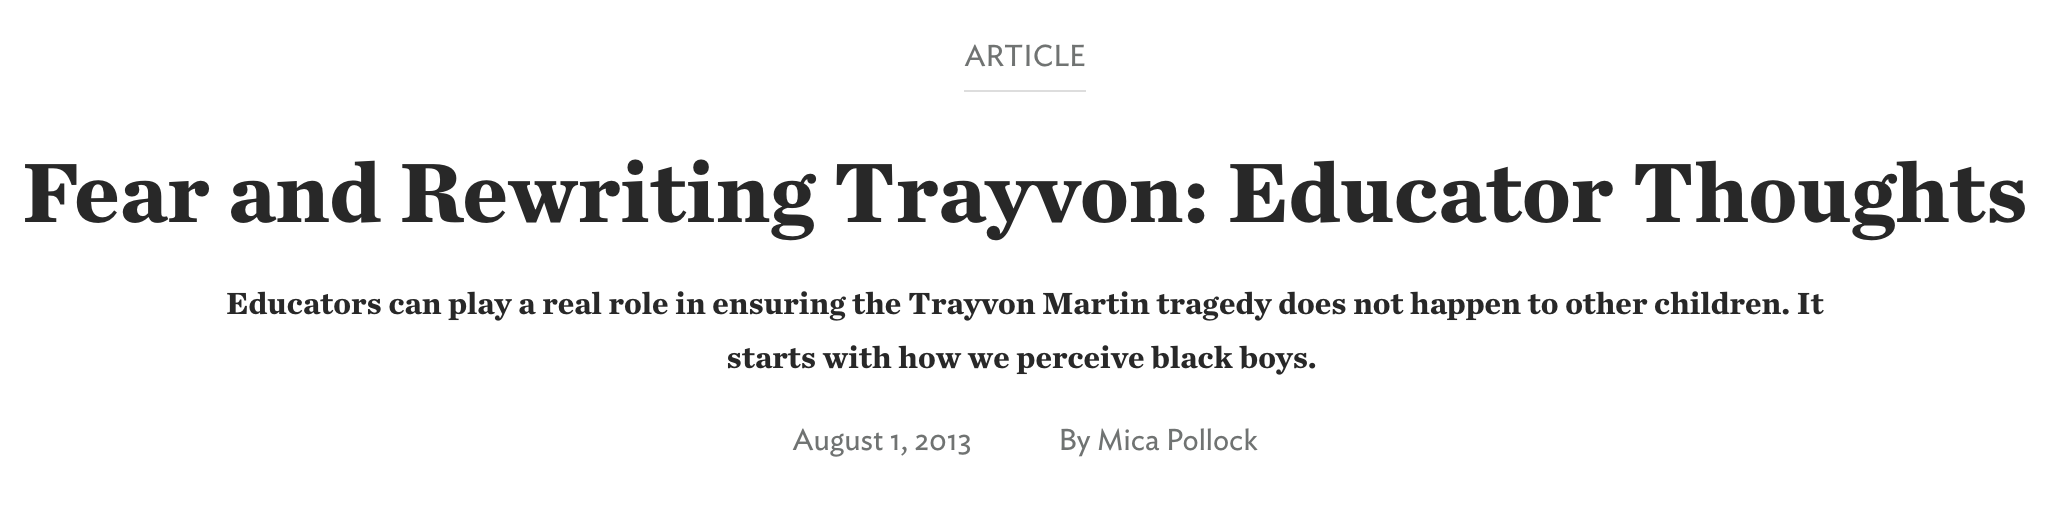 Fear and Rewriting Trayvon: Educator Thoughts.